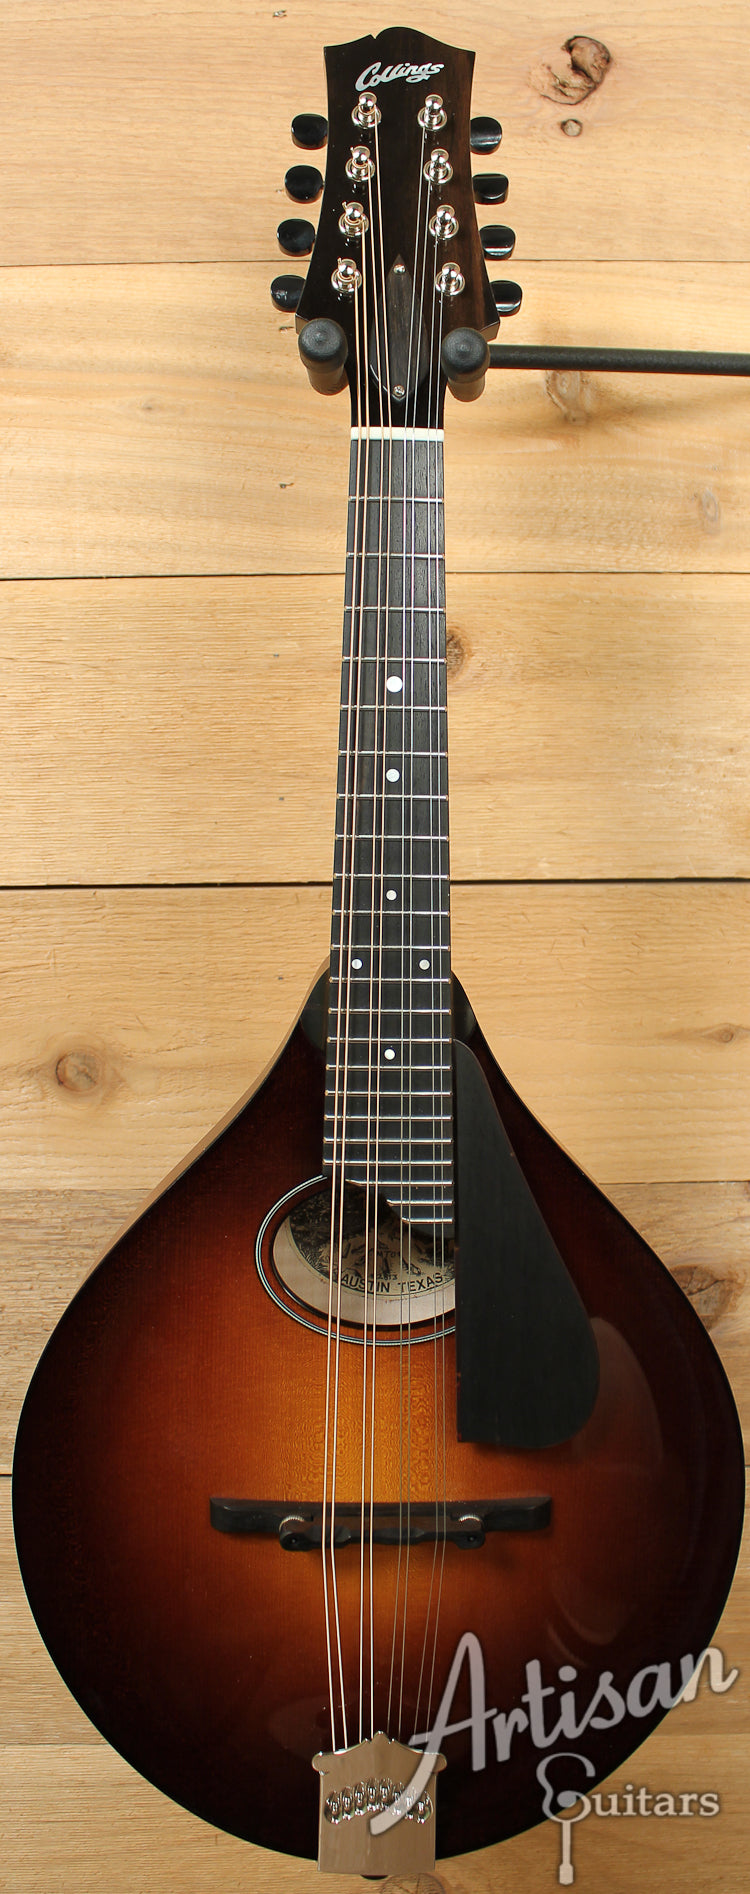 Collings MT O Oval Hole Mandolin Sunburst Gloss Top with Flame Maple Back and Sides ID-7287 - Artisan Guitars